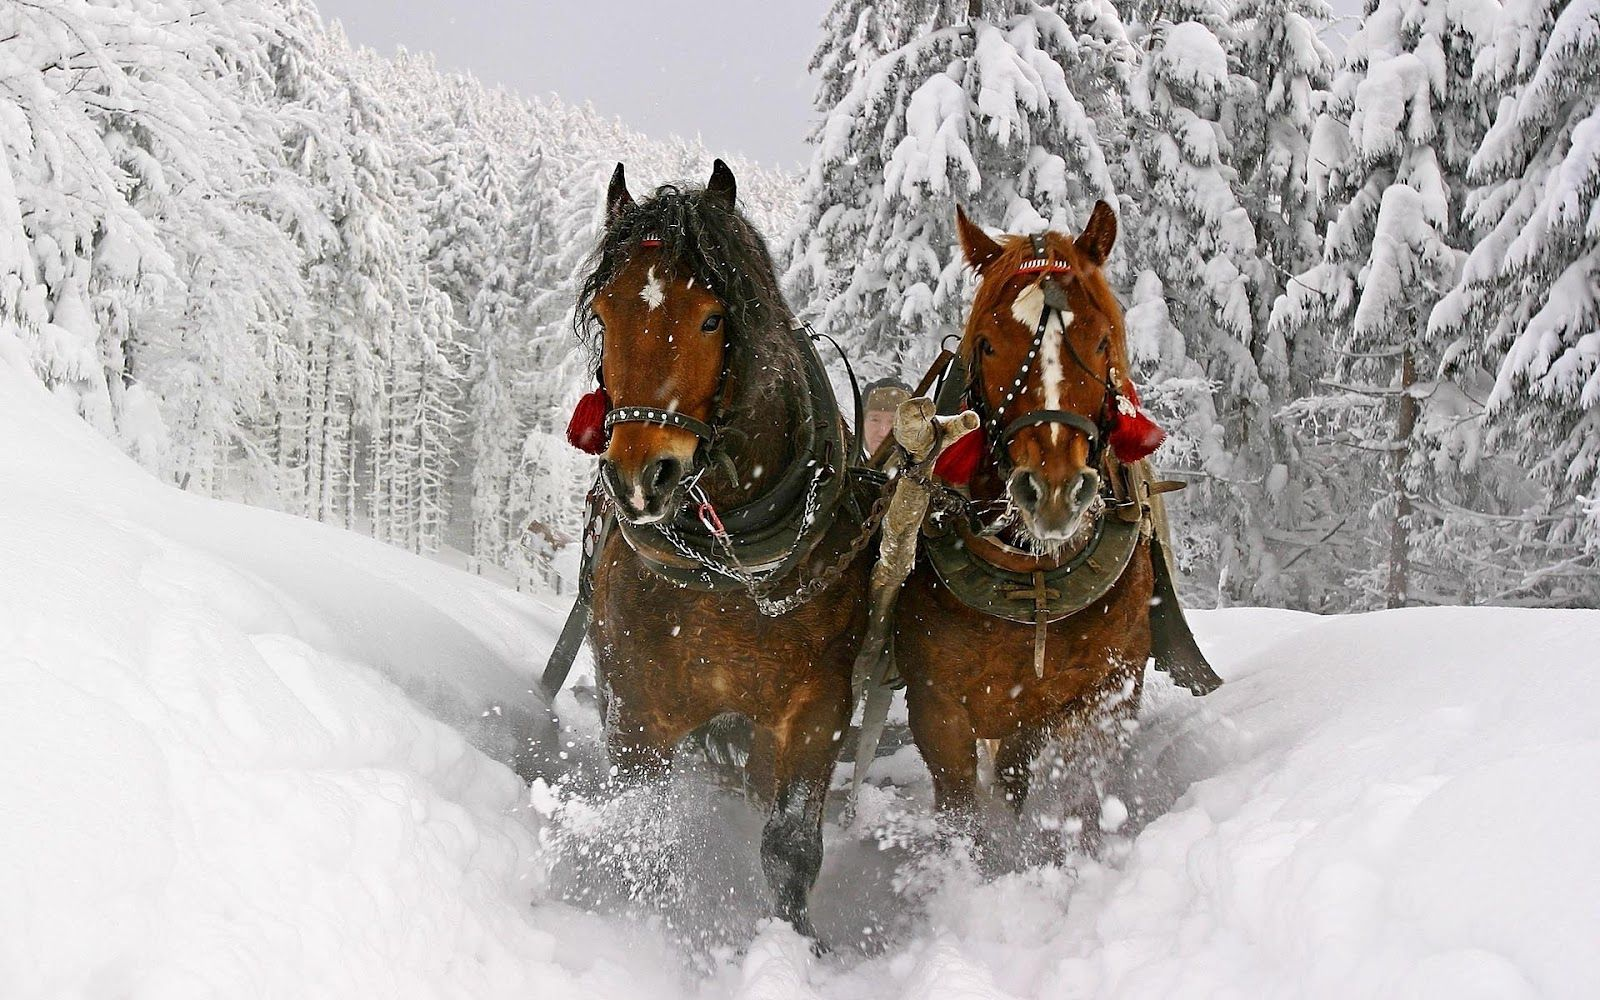 Top Wallpaper Horse Winter - 1825136e7eda992b5291fea6441360b6  Graphic_394274.jpg